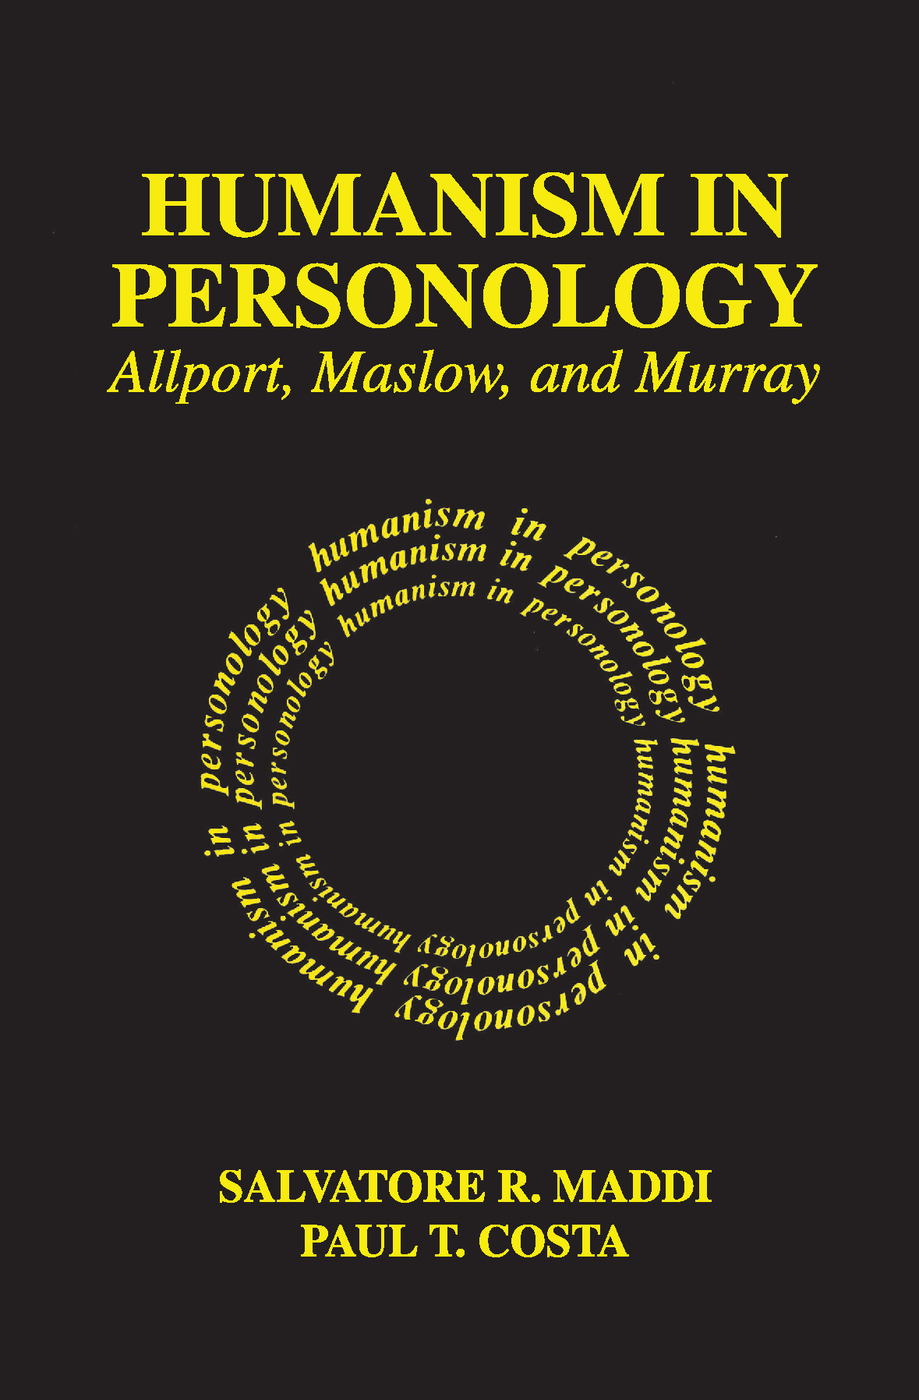 Humanism in Personology: Allport, Maslow, and Murray, 1st Edition (Paperback) book cover